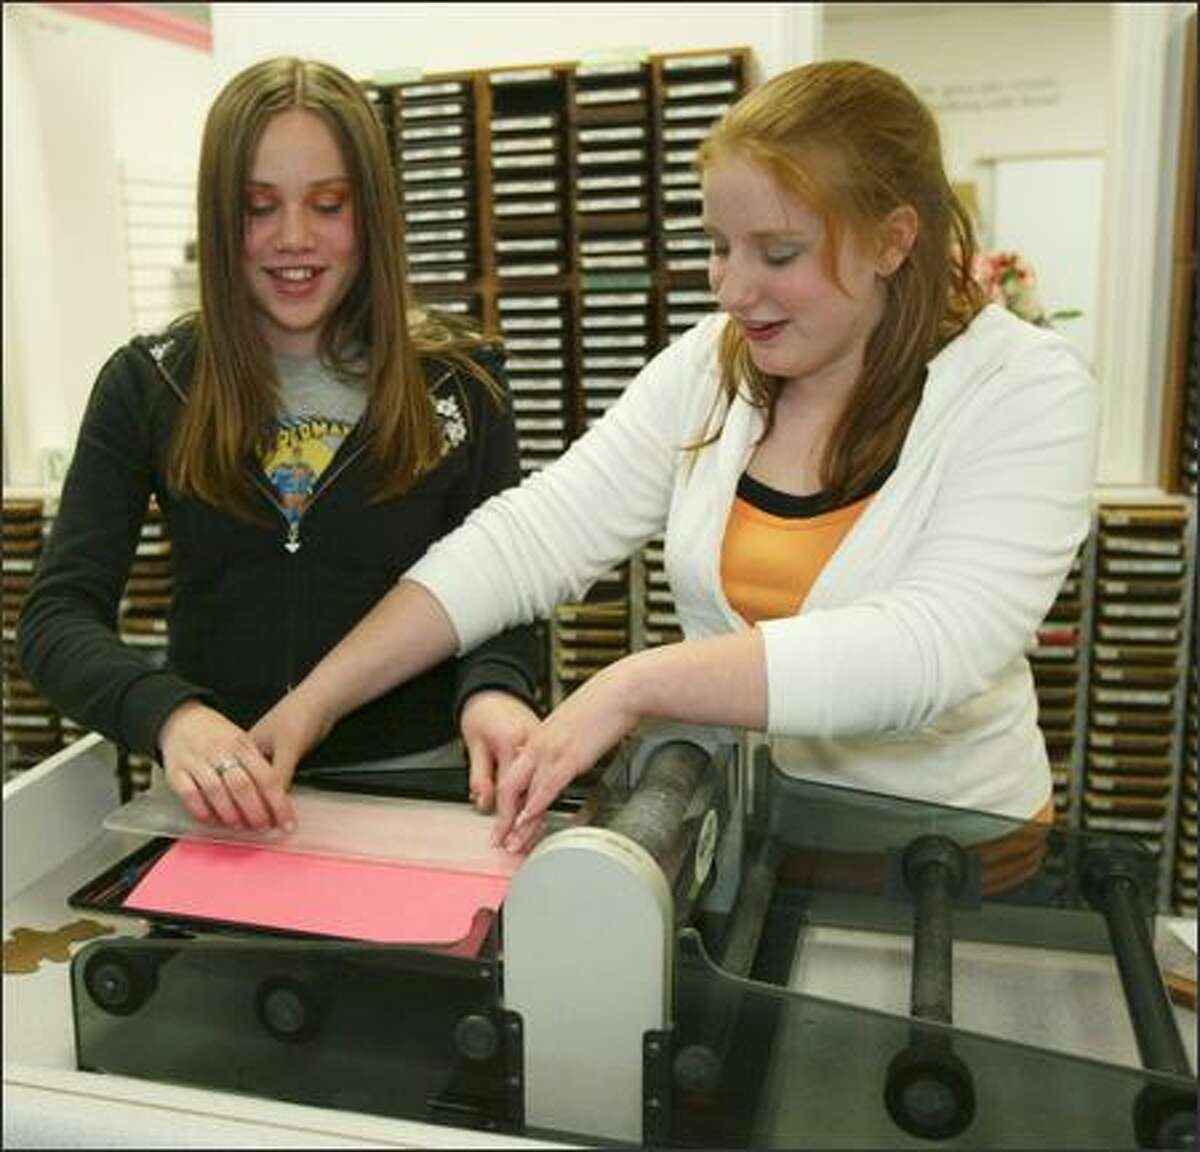 Cassandra Boseek, 13, left, and Kaila Sax, 13, use an expensive die cutter to cut out various shapes during a beginning scrapbooking class at Lasting Memories in Lynnwood.